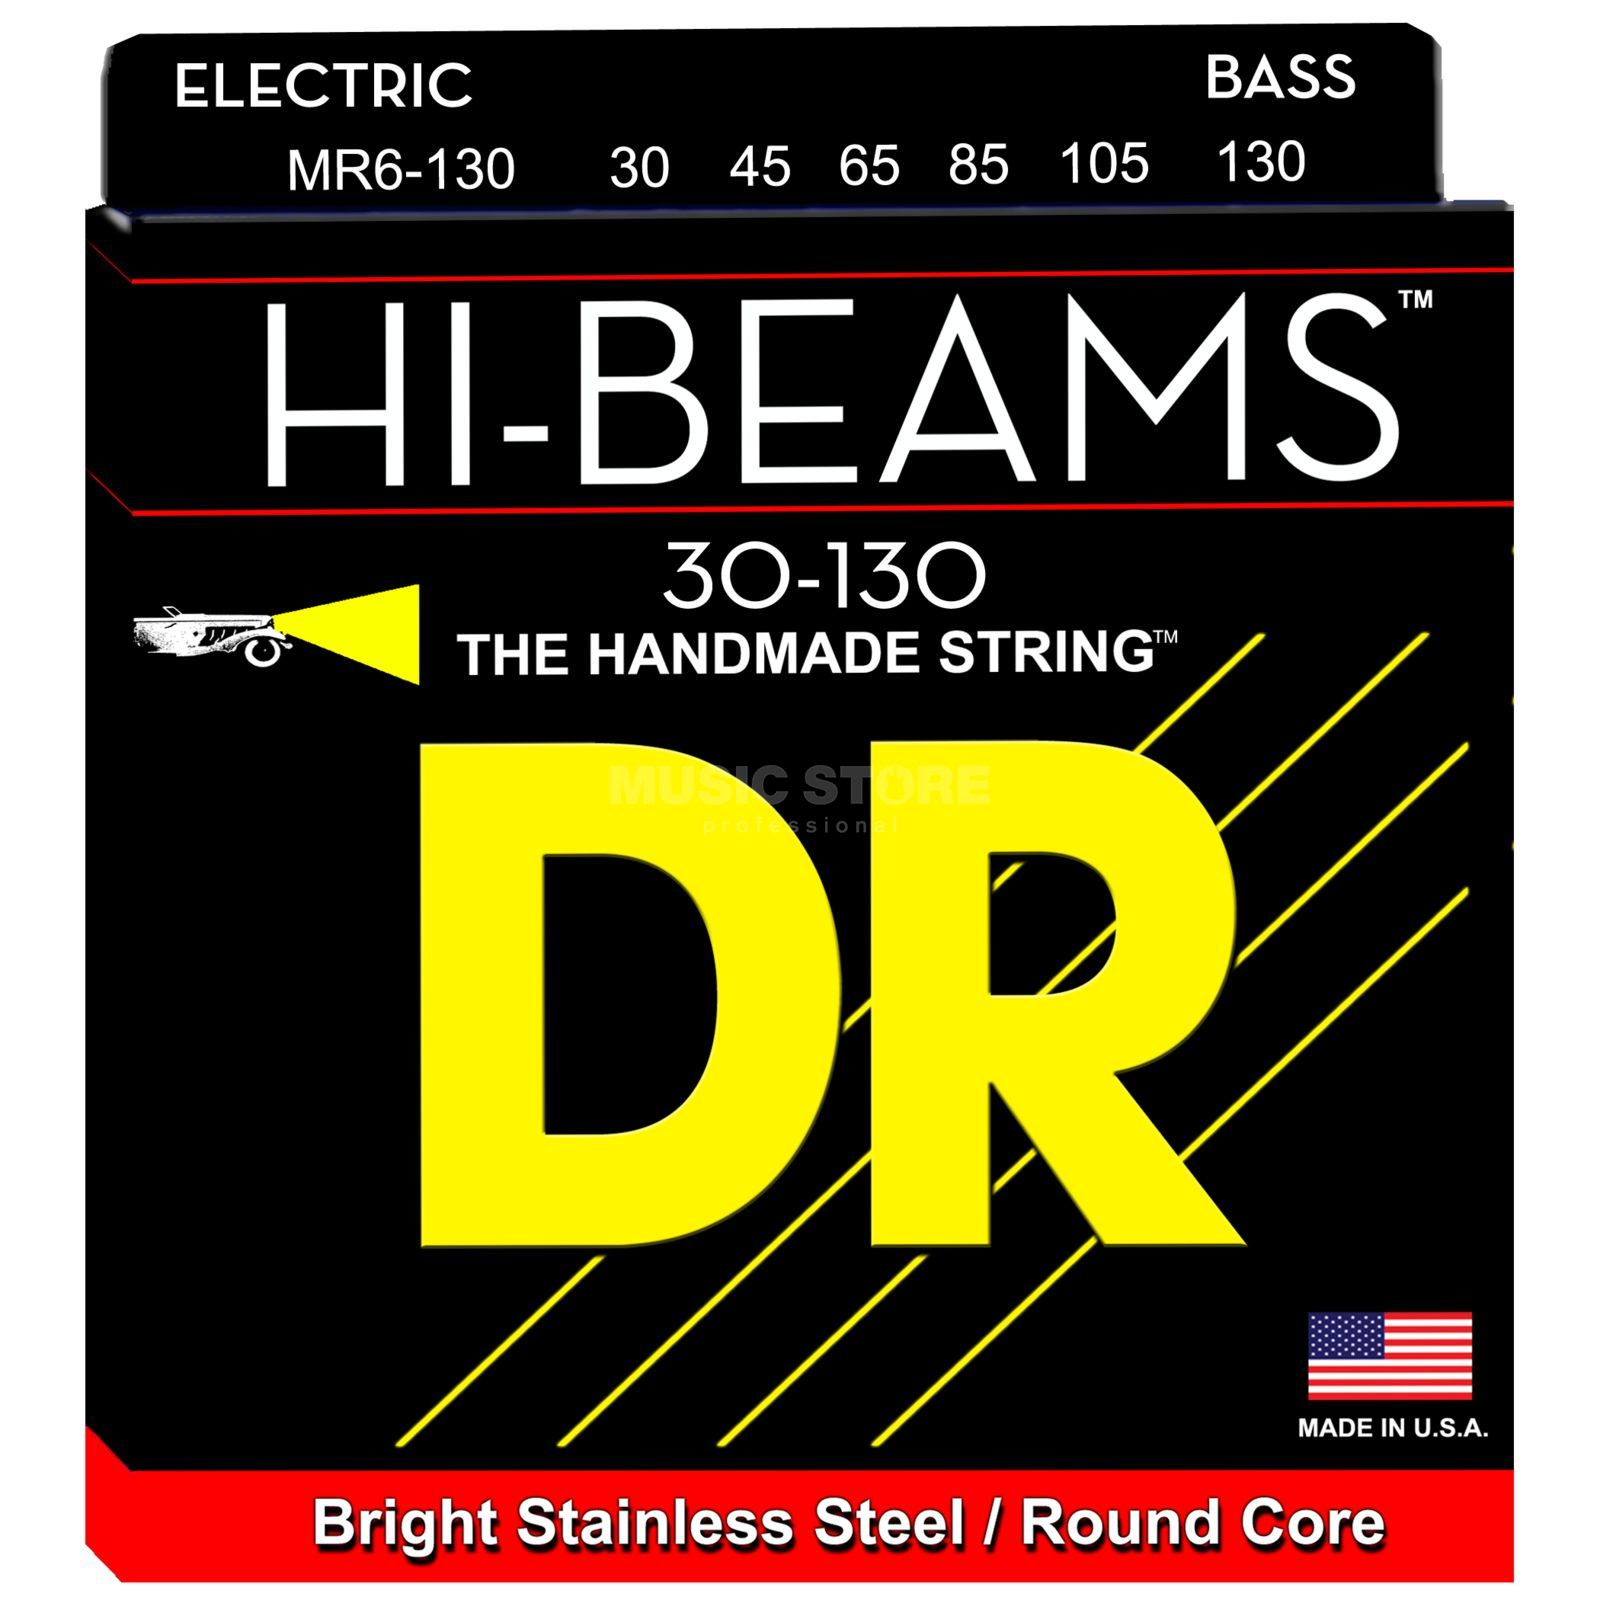 DR 6er bas 30-130 Hi-Beam Stainless Steel MR6-30-130 Productafbeelding